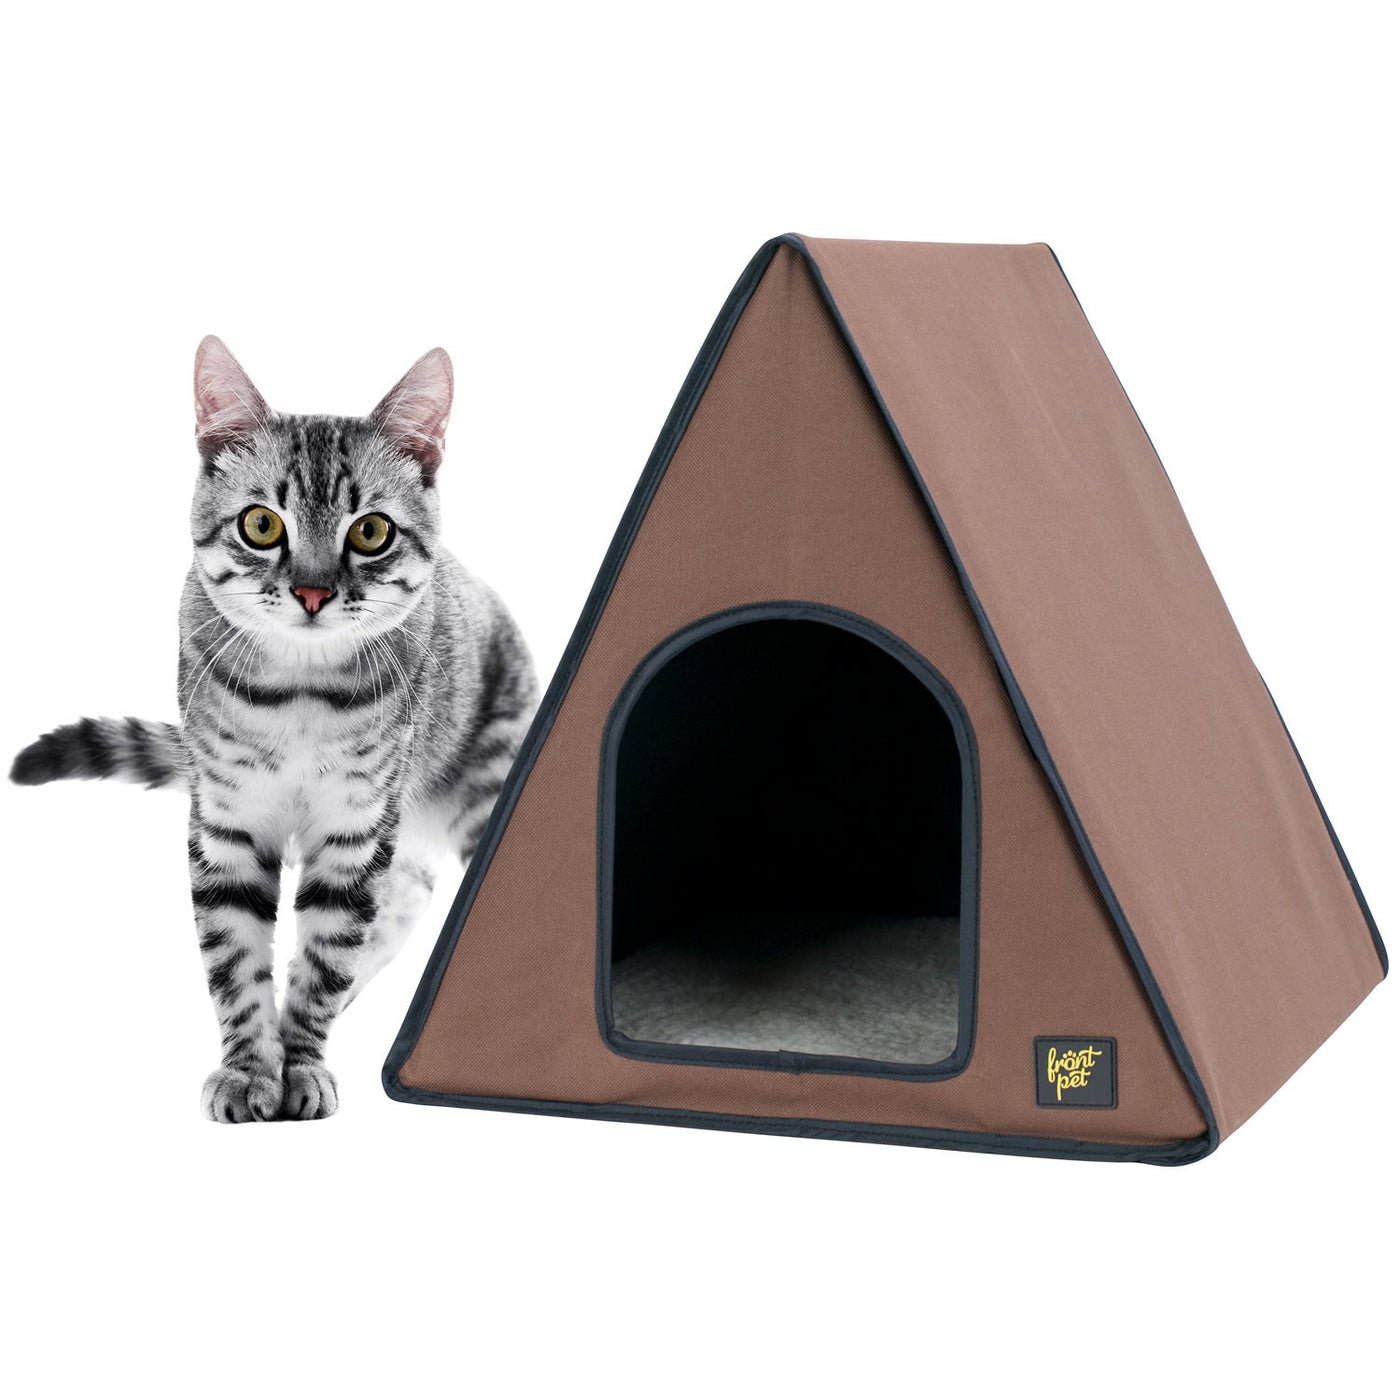 Cat House Outdoor Heated Cat House Amp Bed Frontpet Com